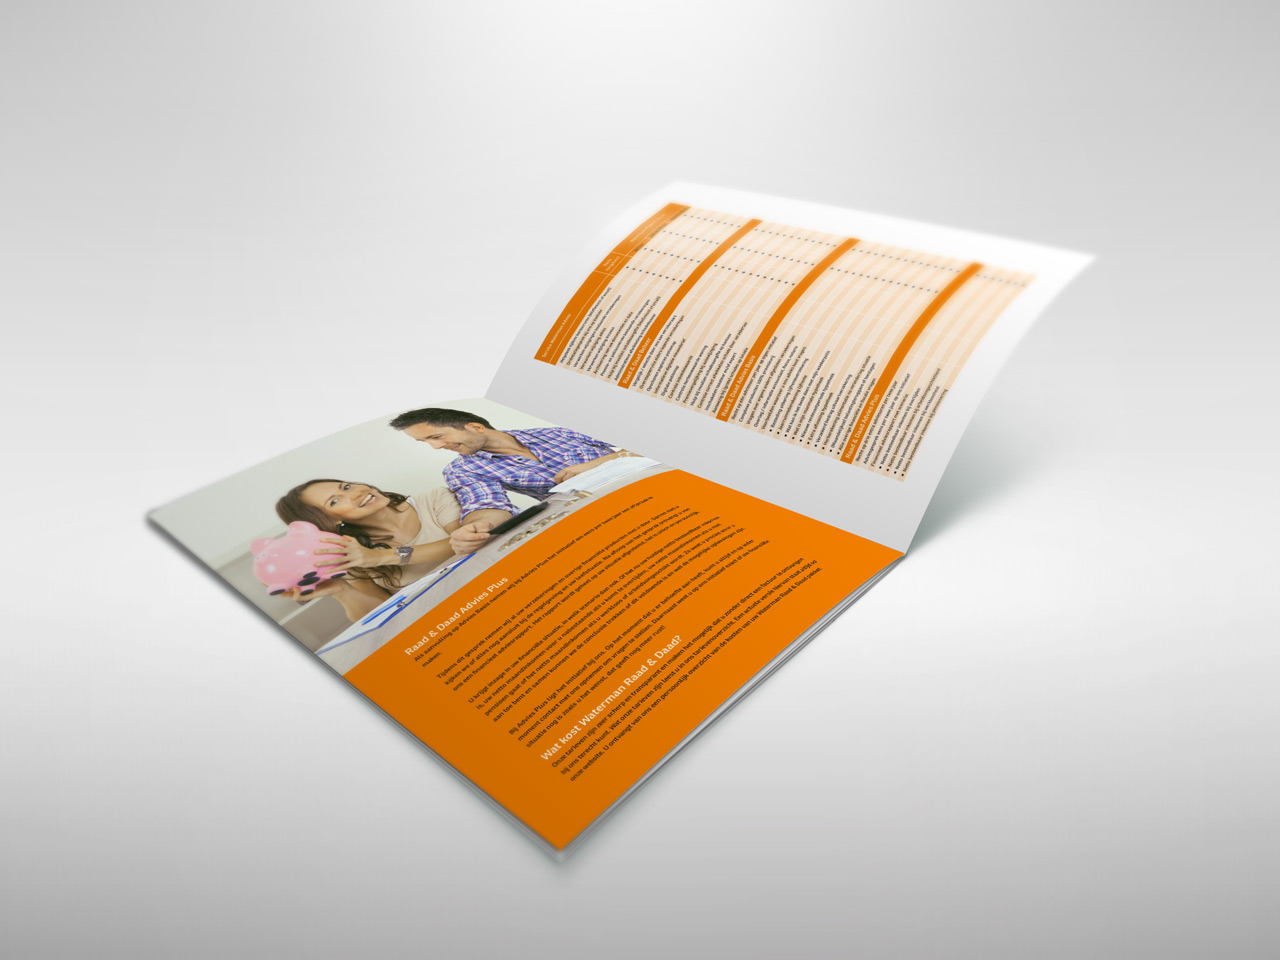 Brochure-Inside-Waterman-Raad-en-Daad-3